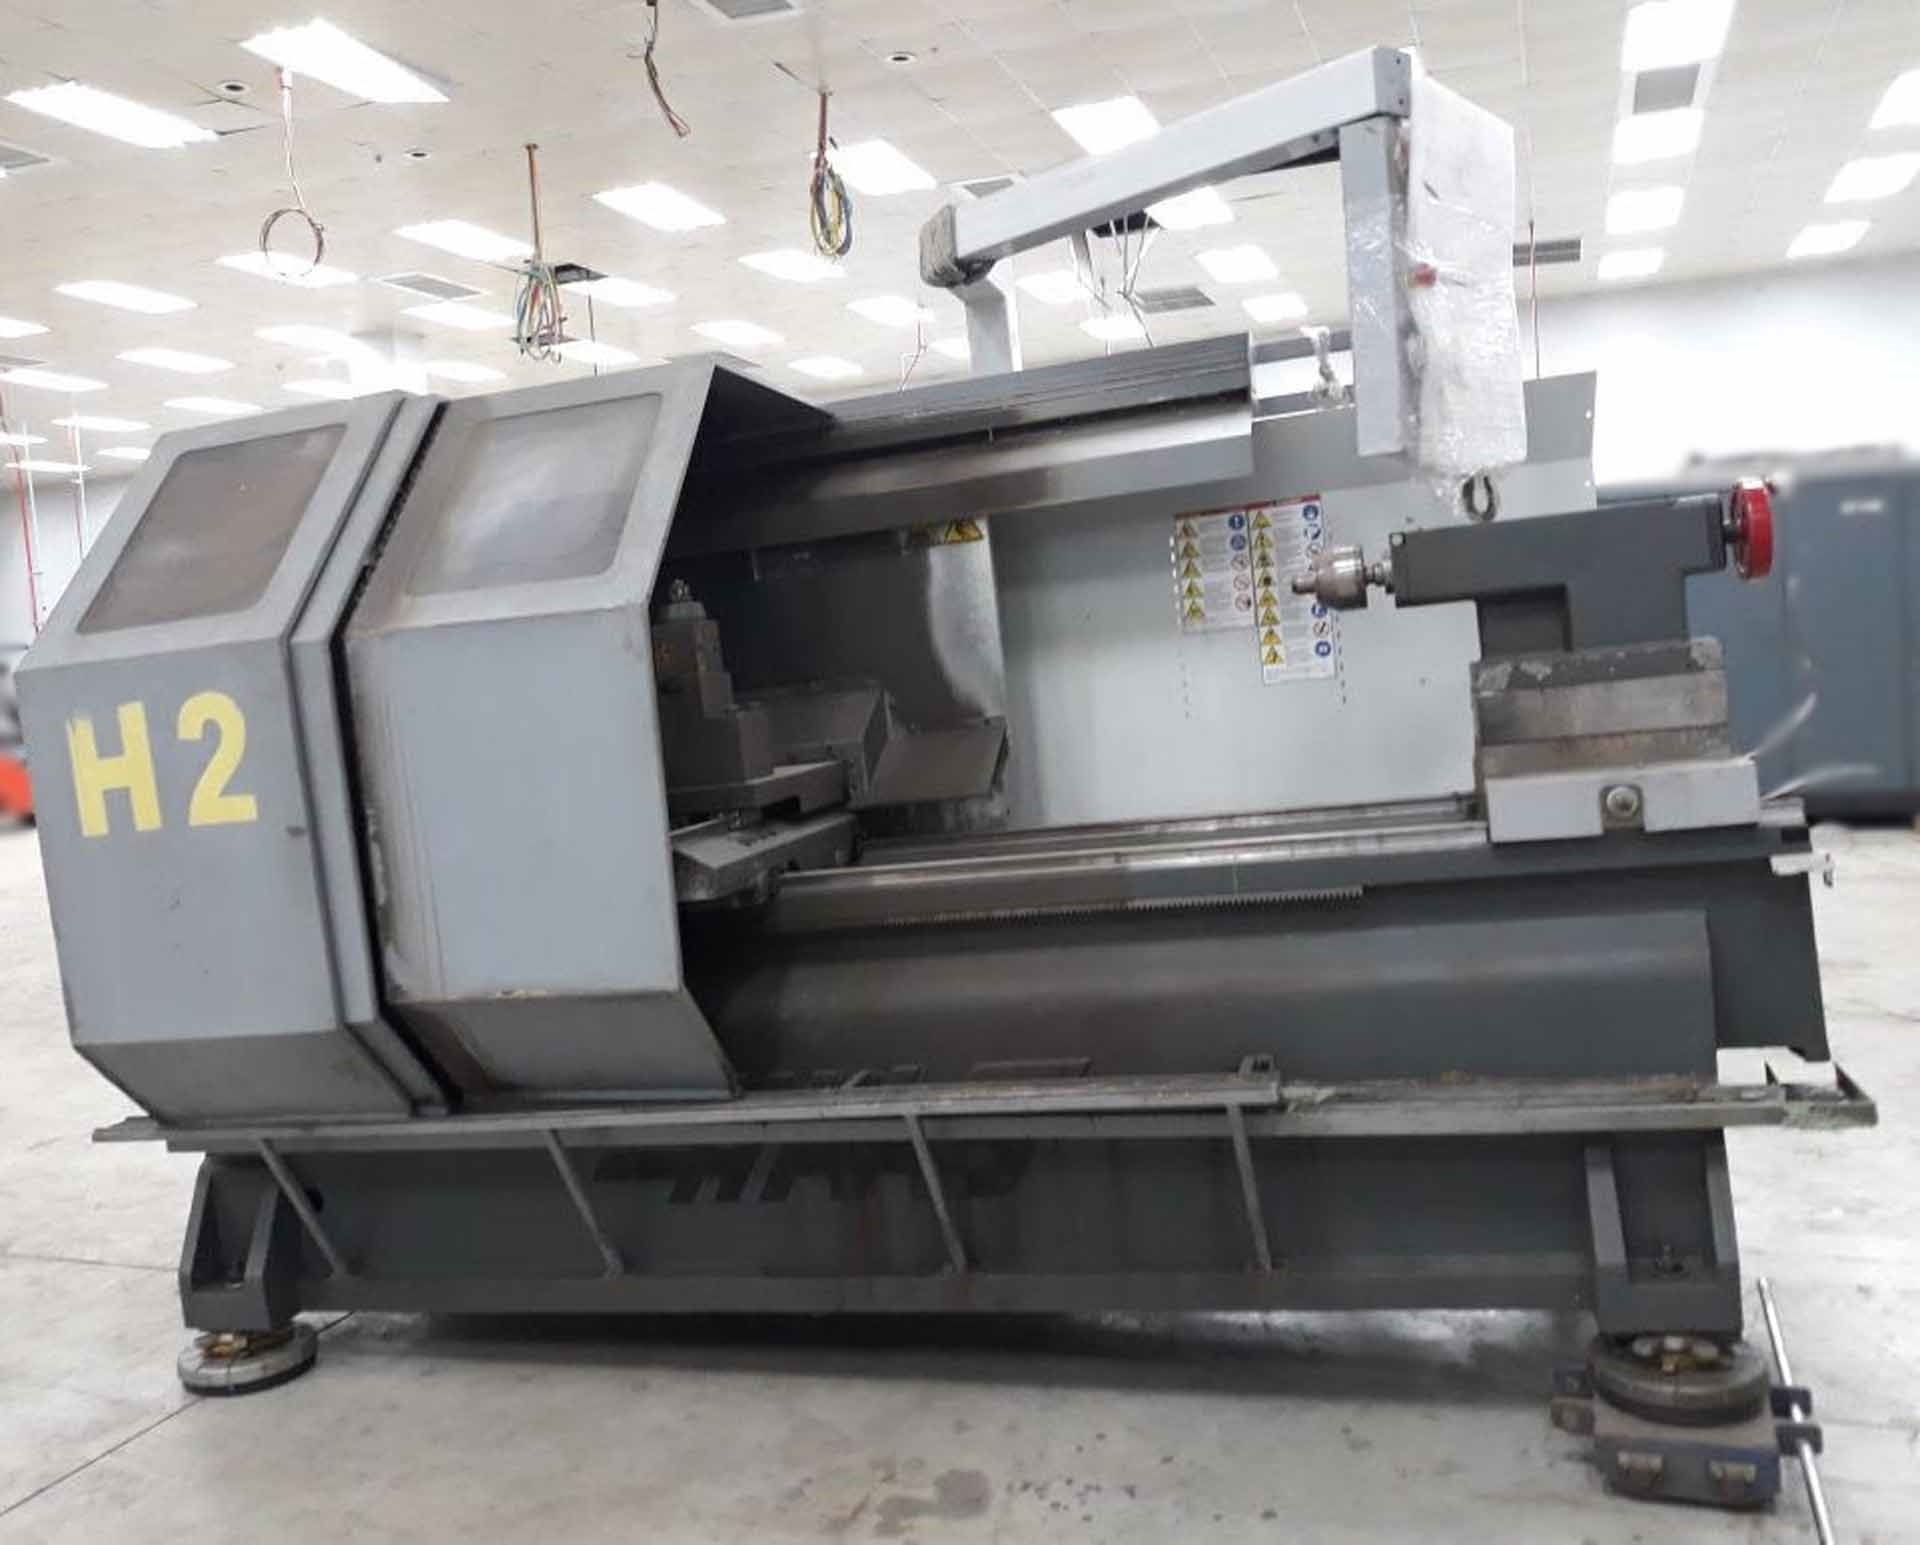 HAAS TL-3W used for sale price #9220744 > buy from CAE on